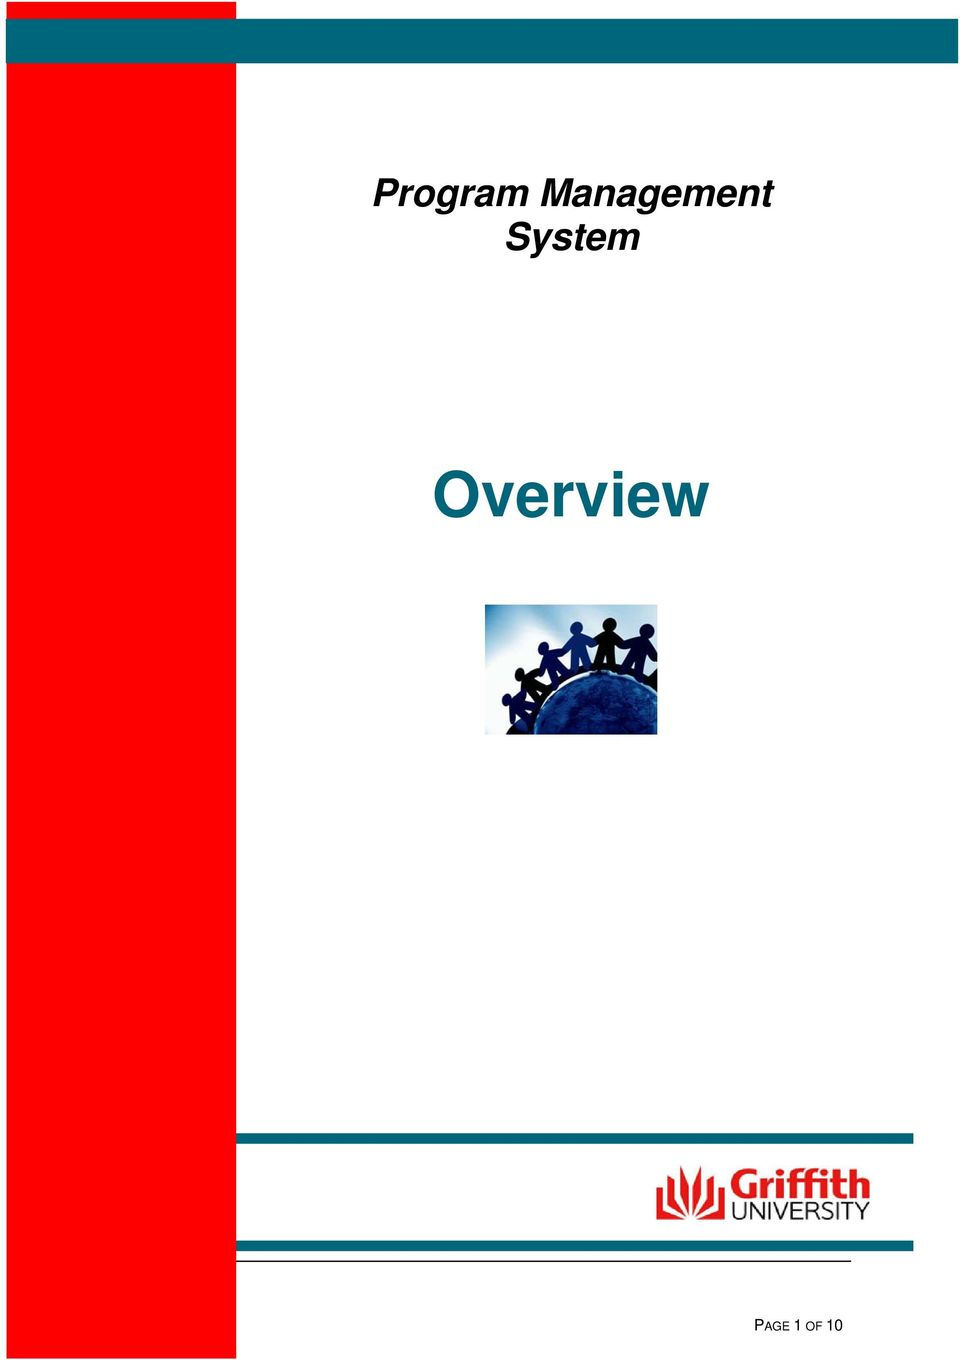 System Overview PRINTED